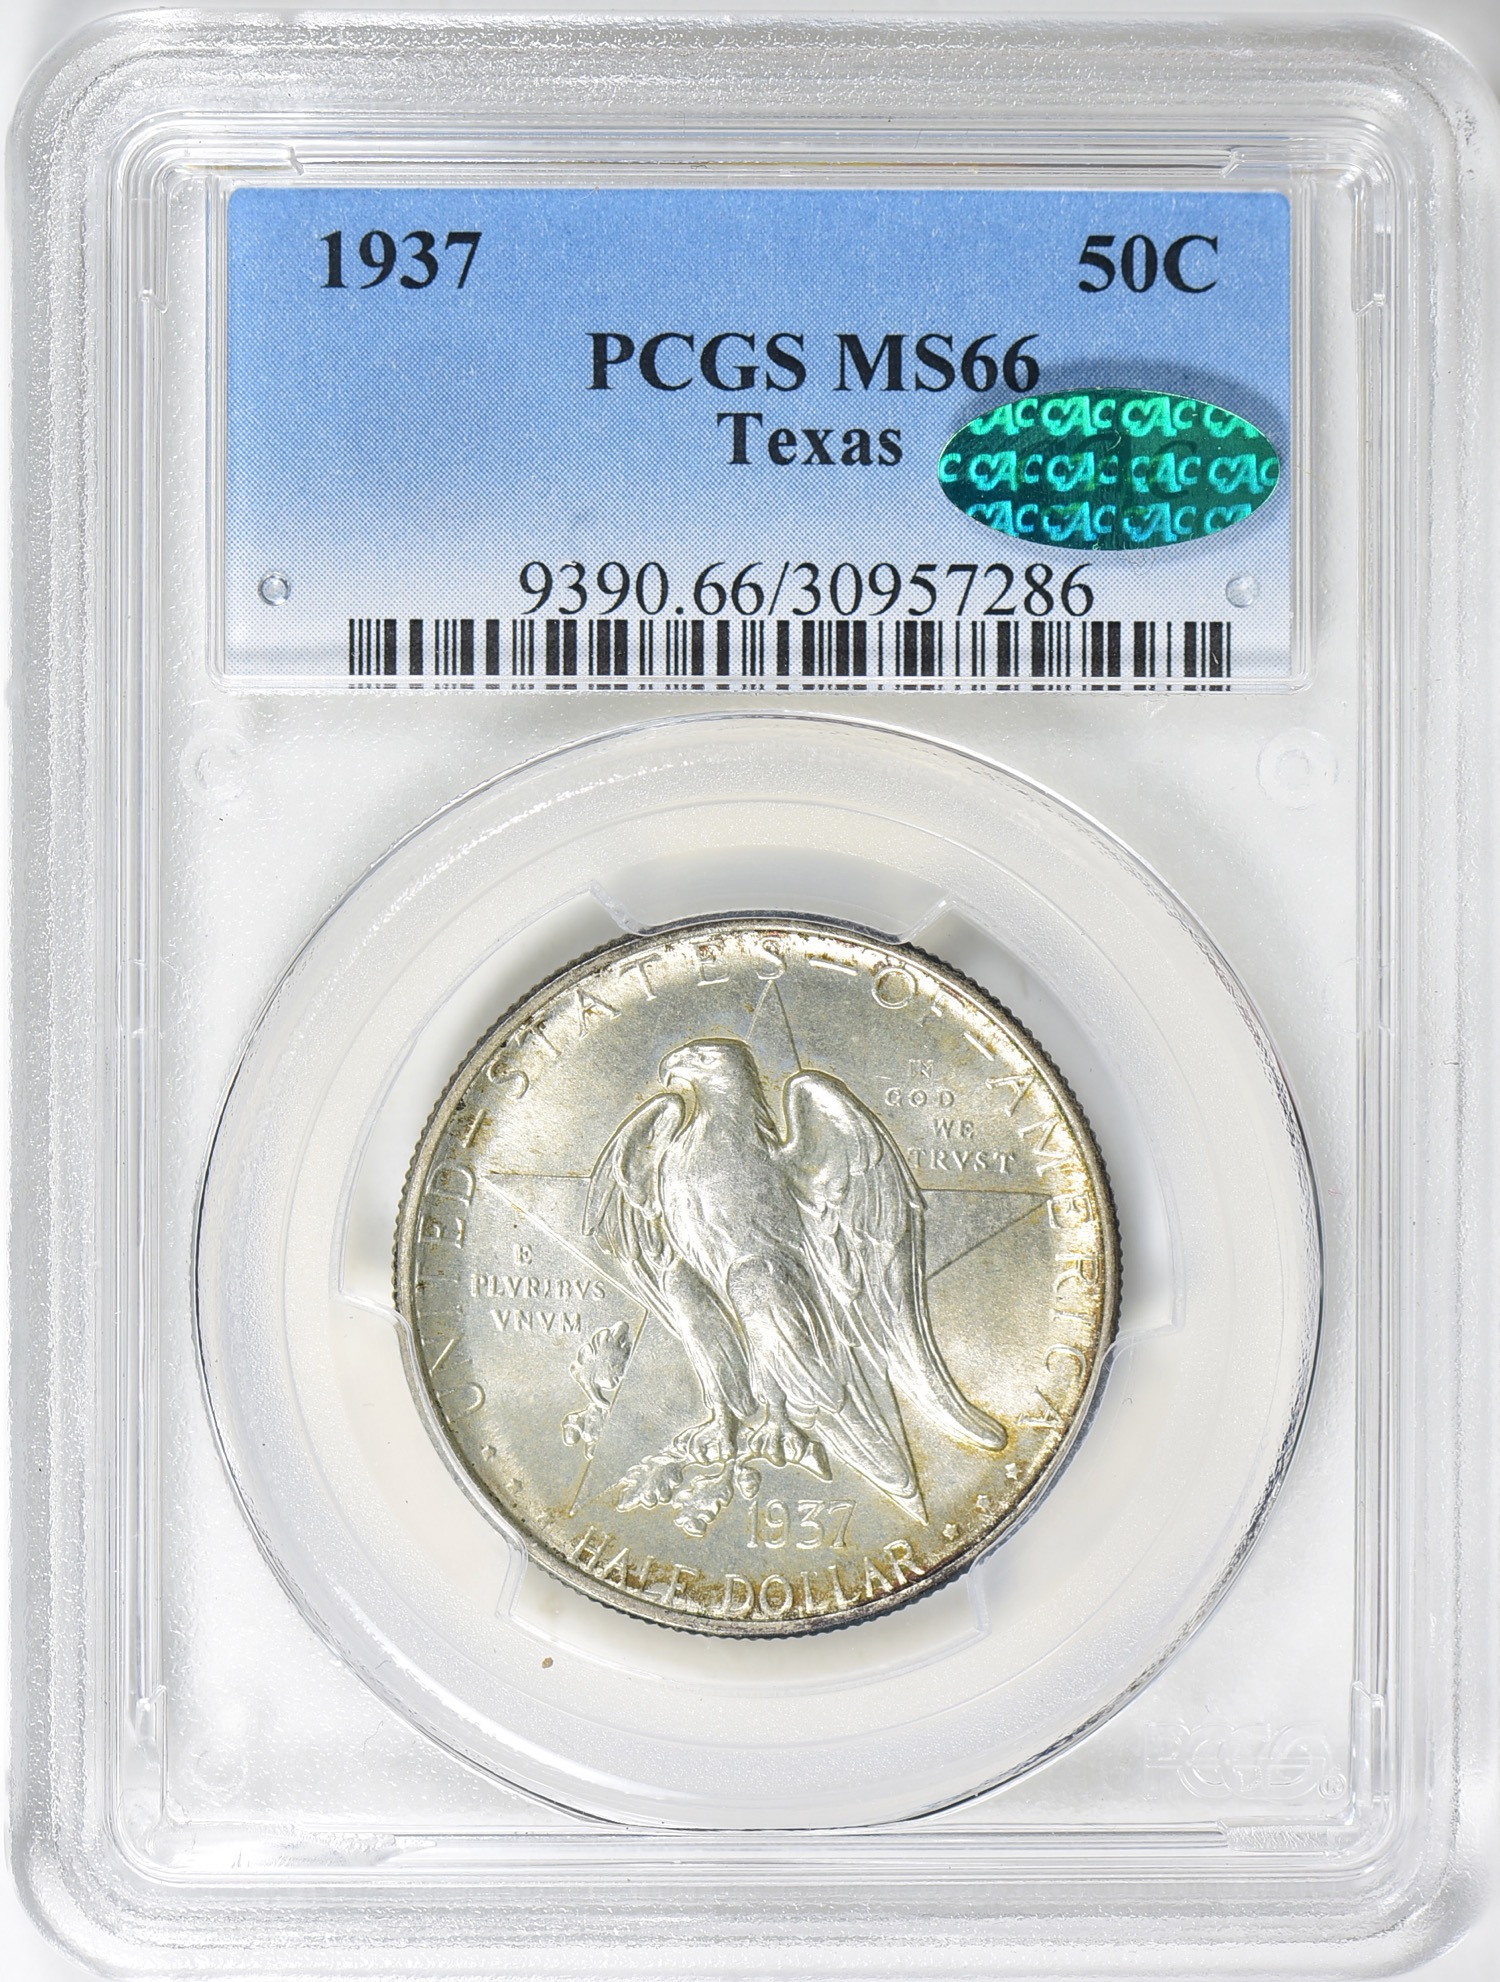 1937 Texas MS66 CAC - Acquired 5.19.19 GreatCollections. CC now has 10 of 13 Texans for this registry set - all MS66 CAC. Commemorative's offer a lot of collecting options at affordable prices. Most go for a few hundred or even less in gem condition with a CAC sticker.